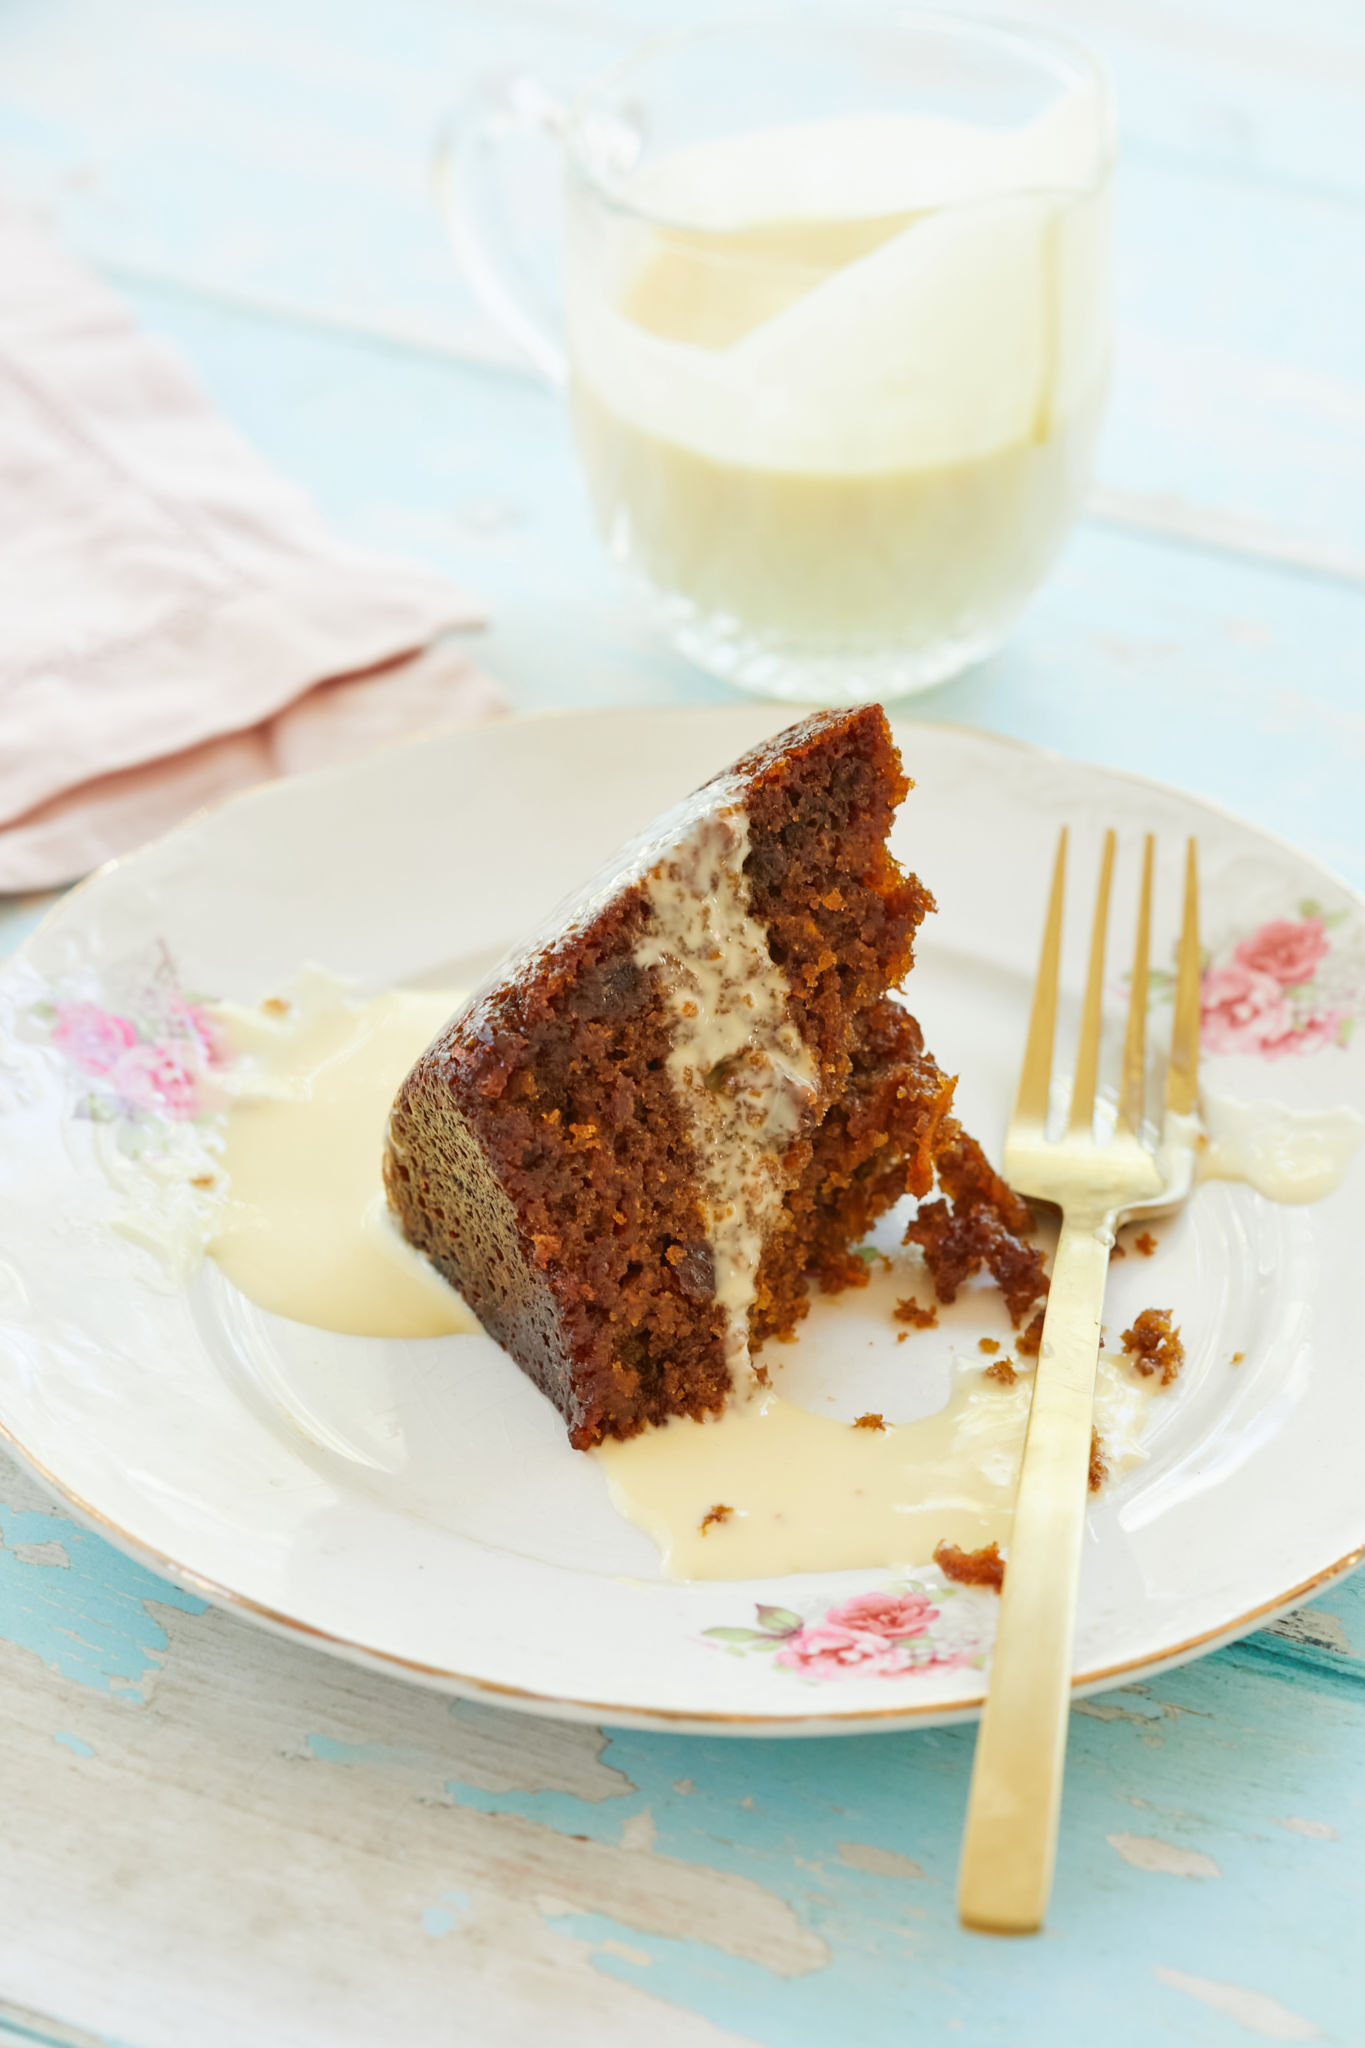 A slice of steamed carrot pudding topped with creme anglaise.